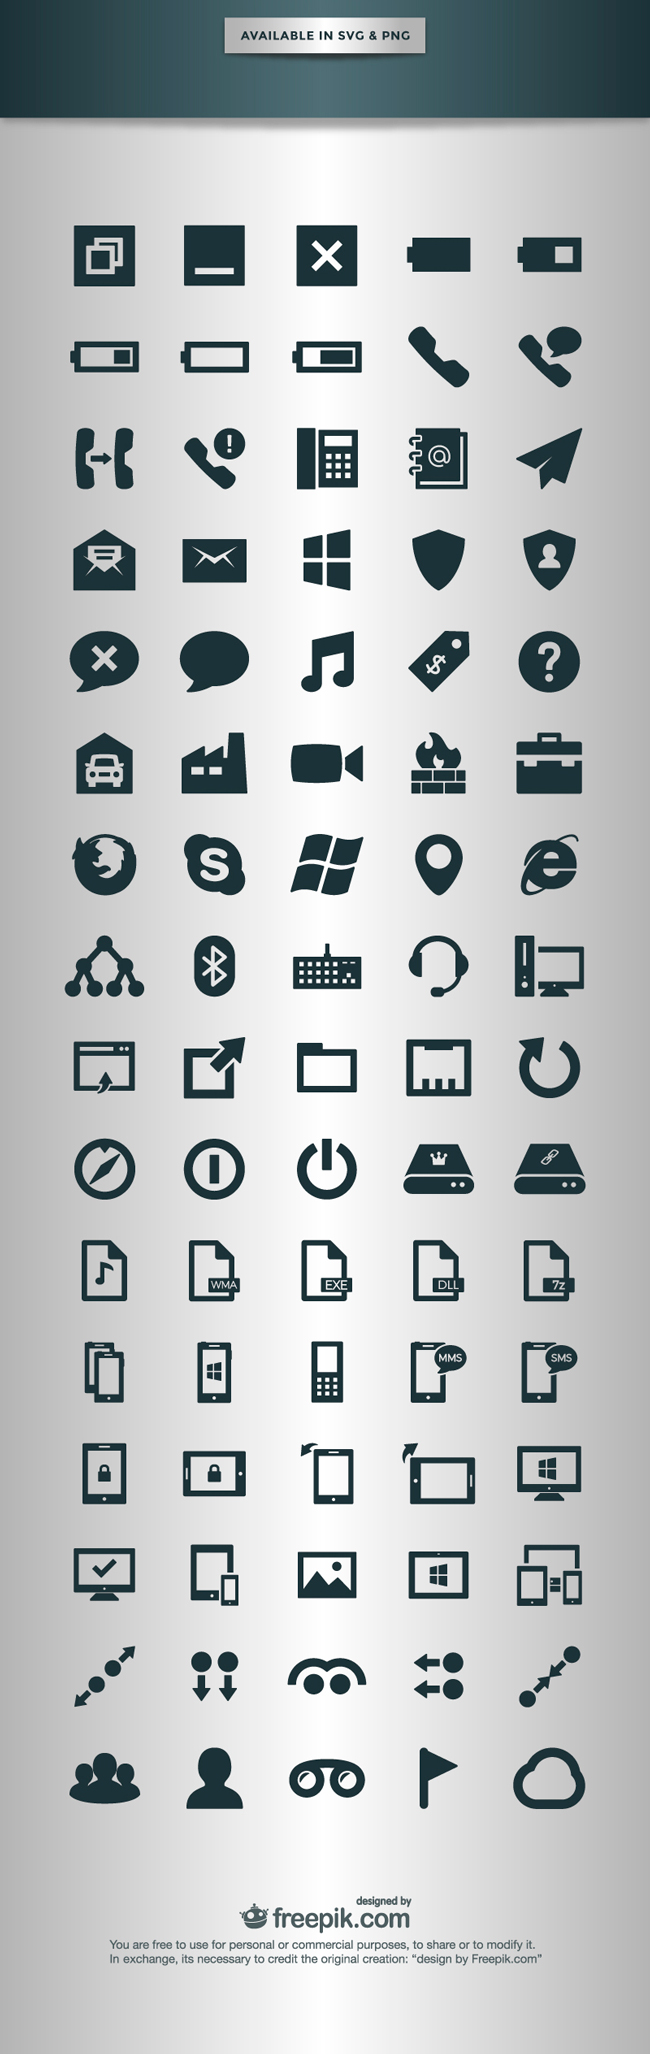 2.Phone Operating System Icons